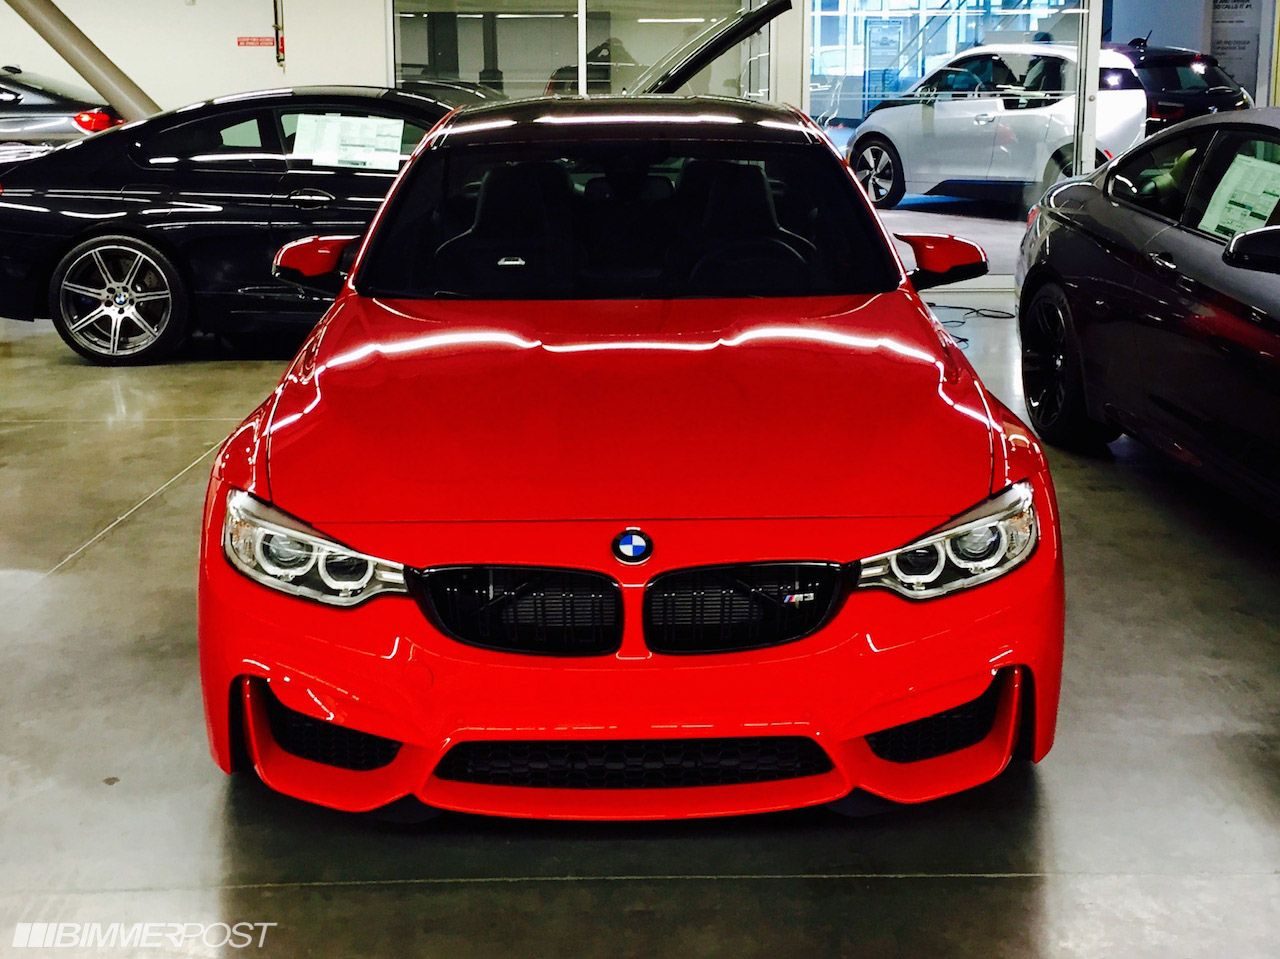 individual ferrari red f80 m3 more photo added bmw 335 f30 pinterest bmw 3 series more. Black Bedroom Furniture Sets. Home Design Ideas